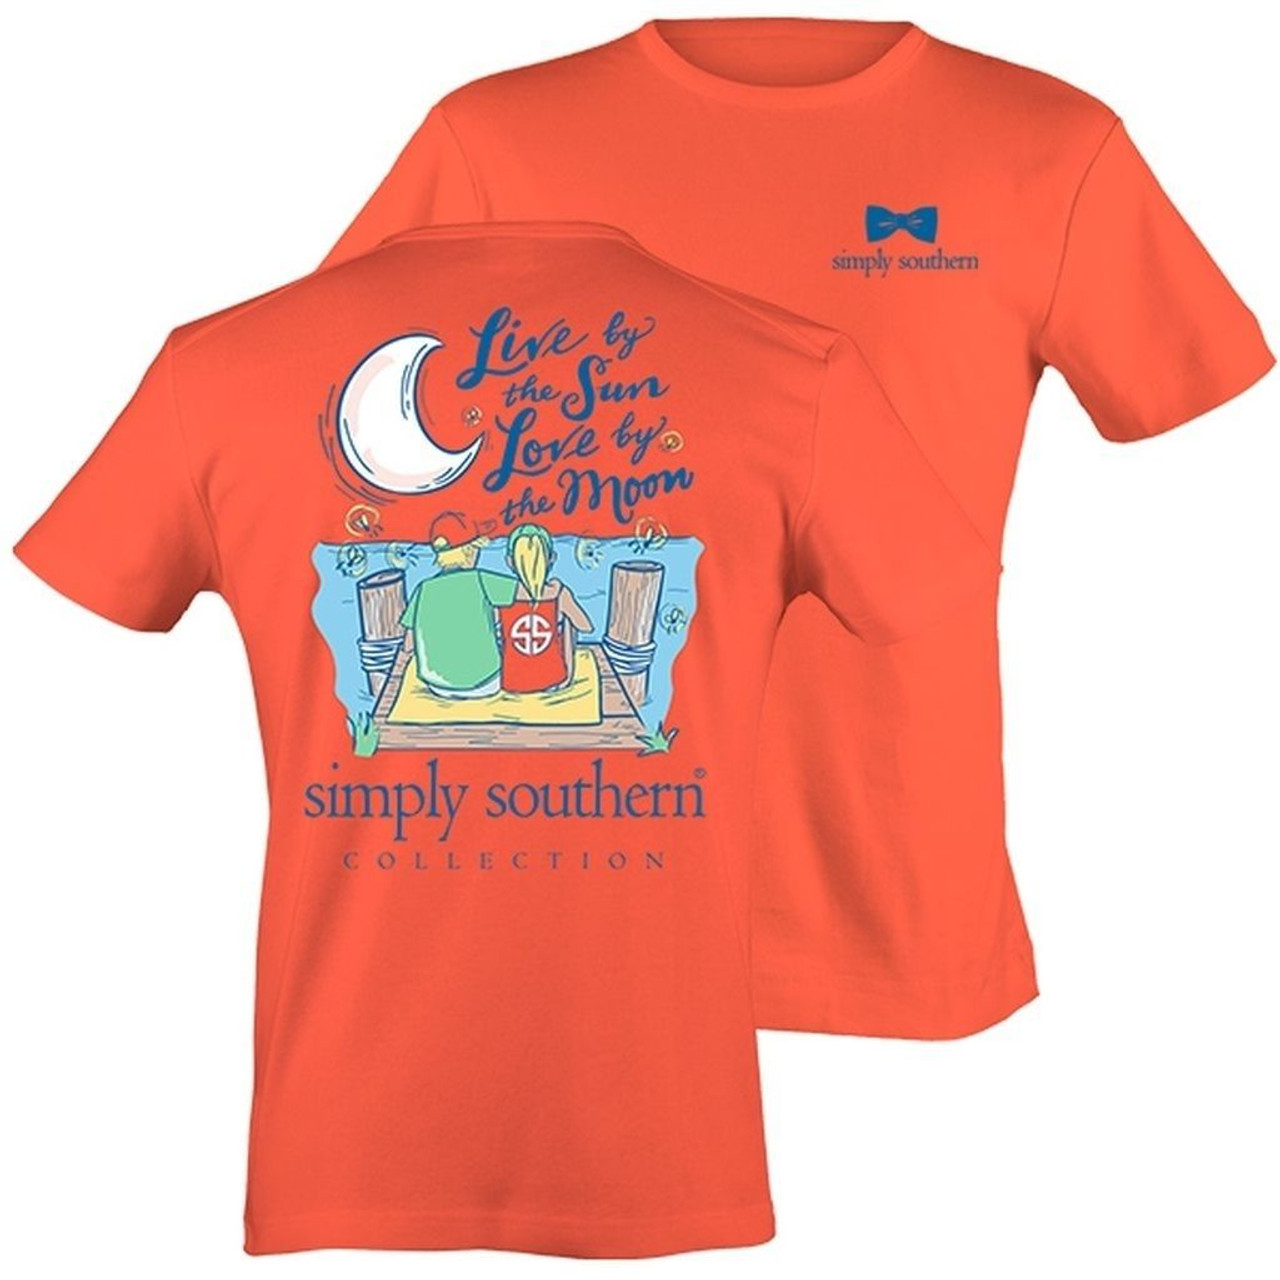 8a30ab6e7a9270 Simply Southern Live By The Sun Love By The Moon w Boy   Girl Cotton ...